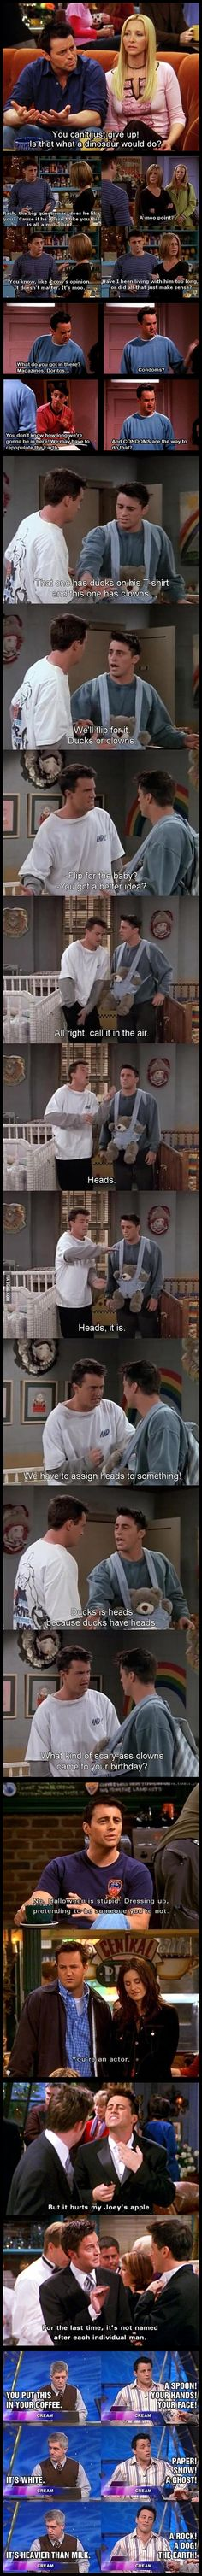 Funny pictures about The Flawless Logic Of Joey Tribbiani. Oh, and cool pics about The Flawless Logic Of Joey Tribbiani. Also, The Flawless Logic Of Joey Tribbiani photos. Serie Friends, Friends Moments, Friends Tv Show, Joey Friends, Friends Scenes, Friends Episodes, Monica Rachel, Bullshit, Jokes